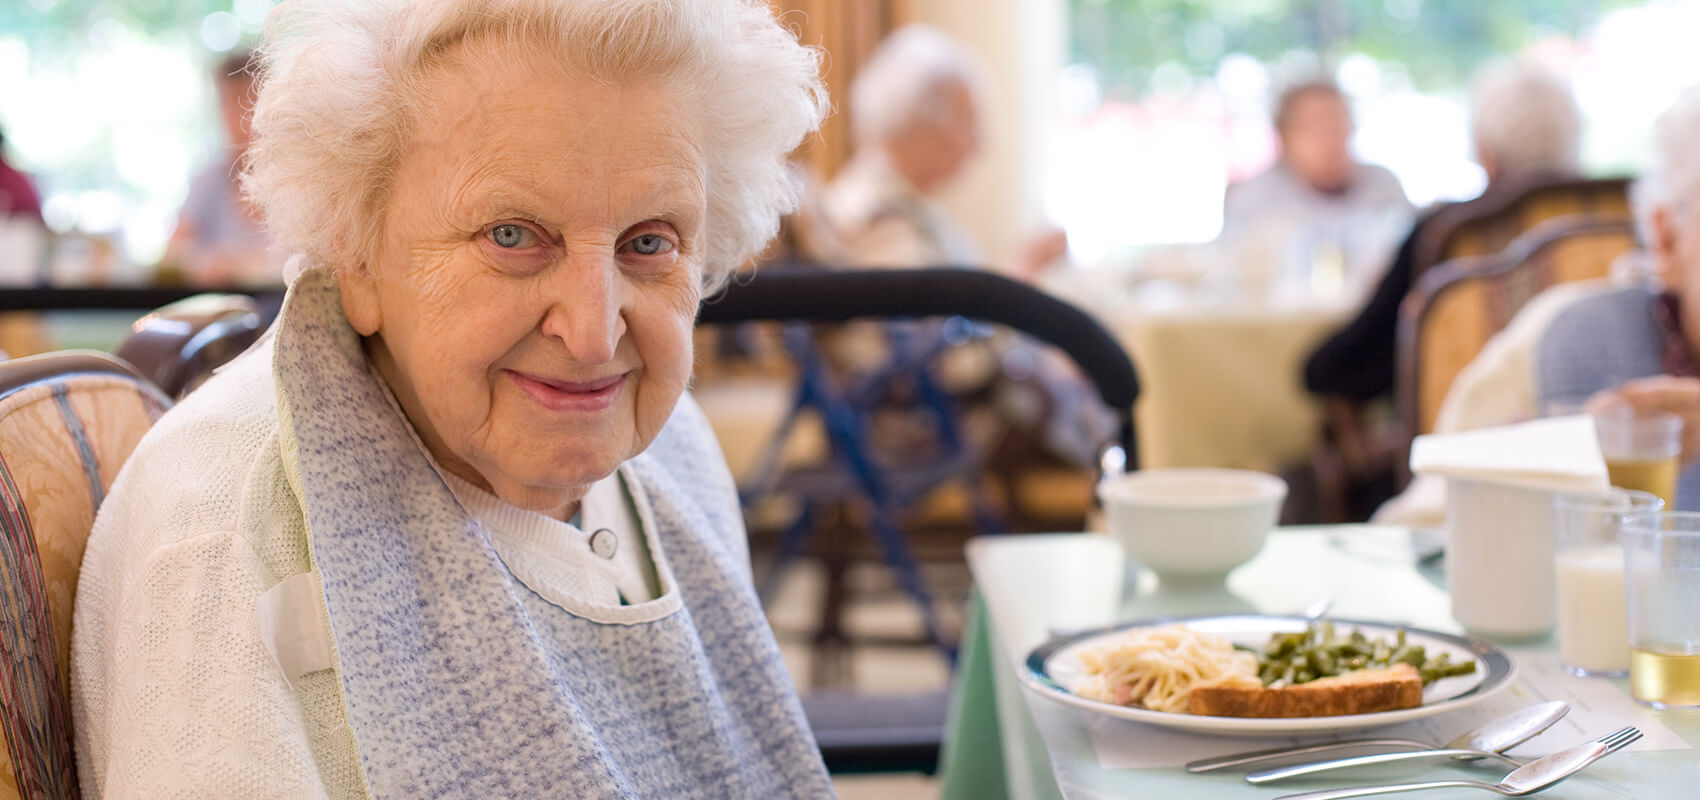 Northleach Court Care Home food and nutrition